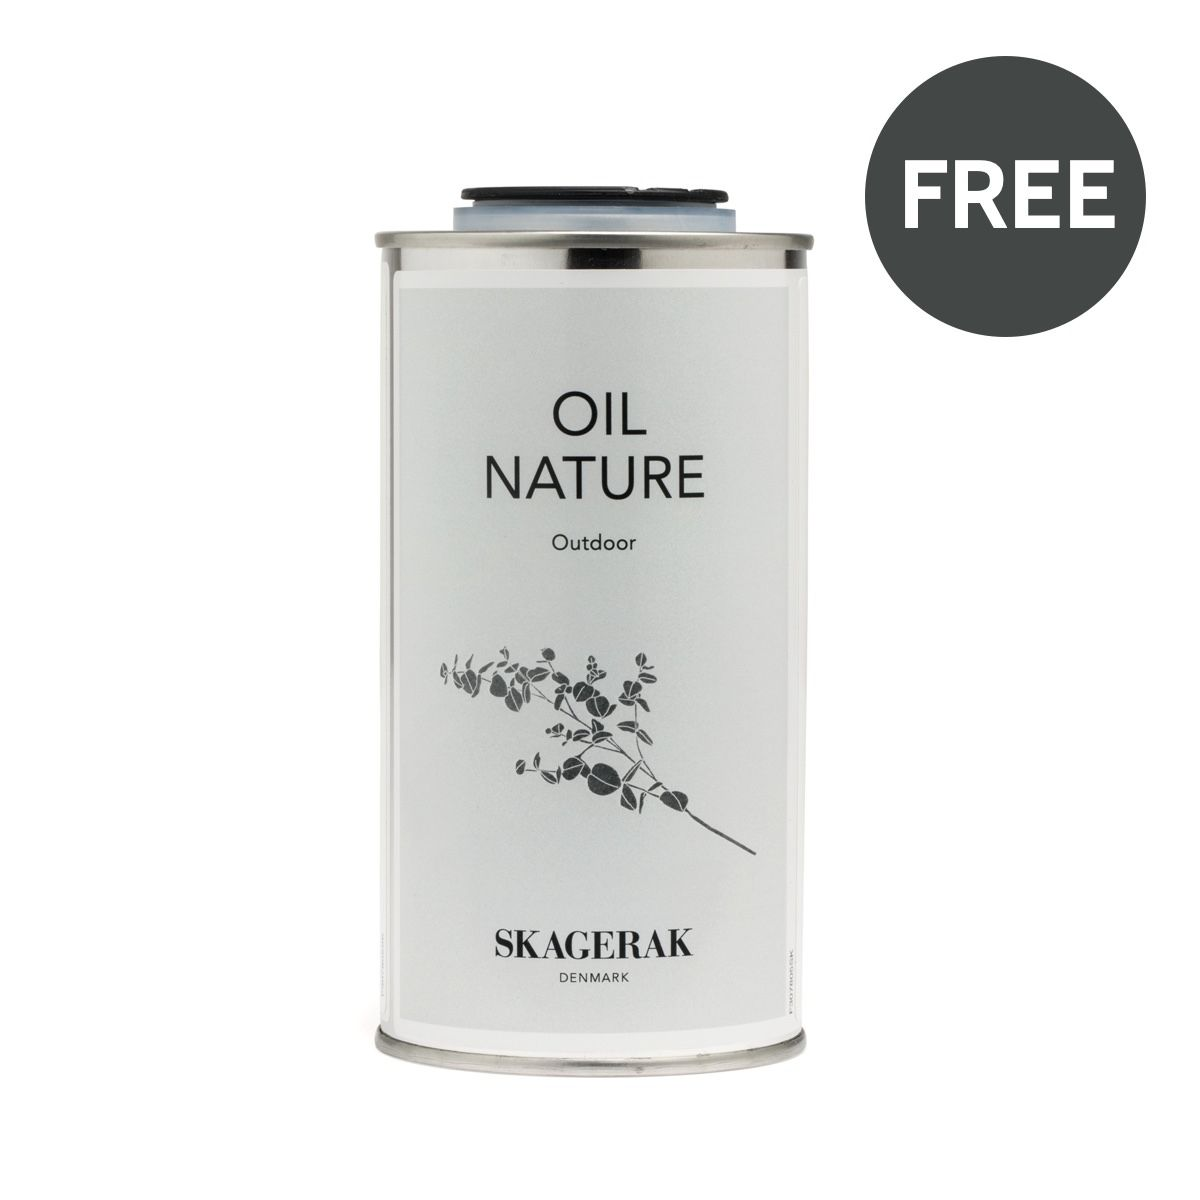 Complimentary maintenance oil